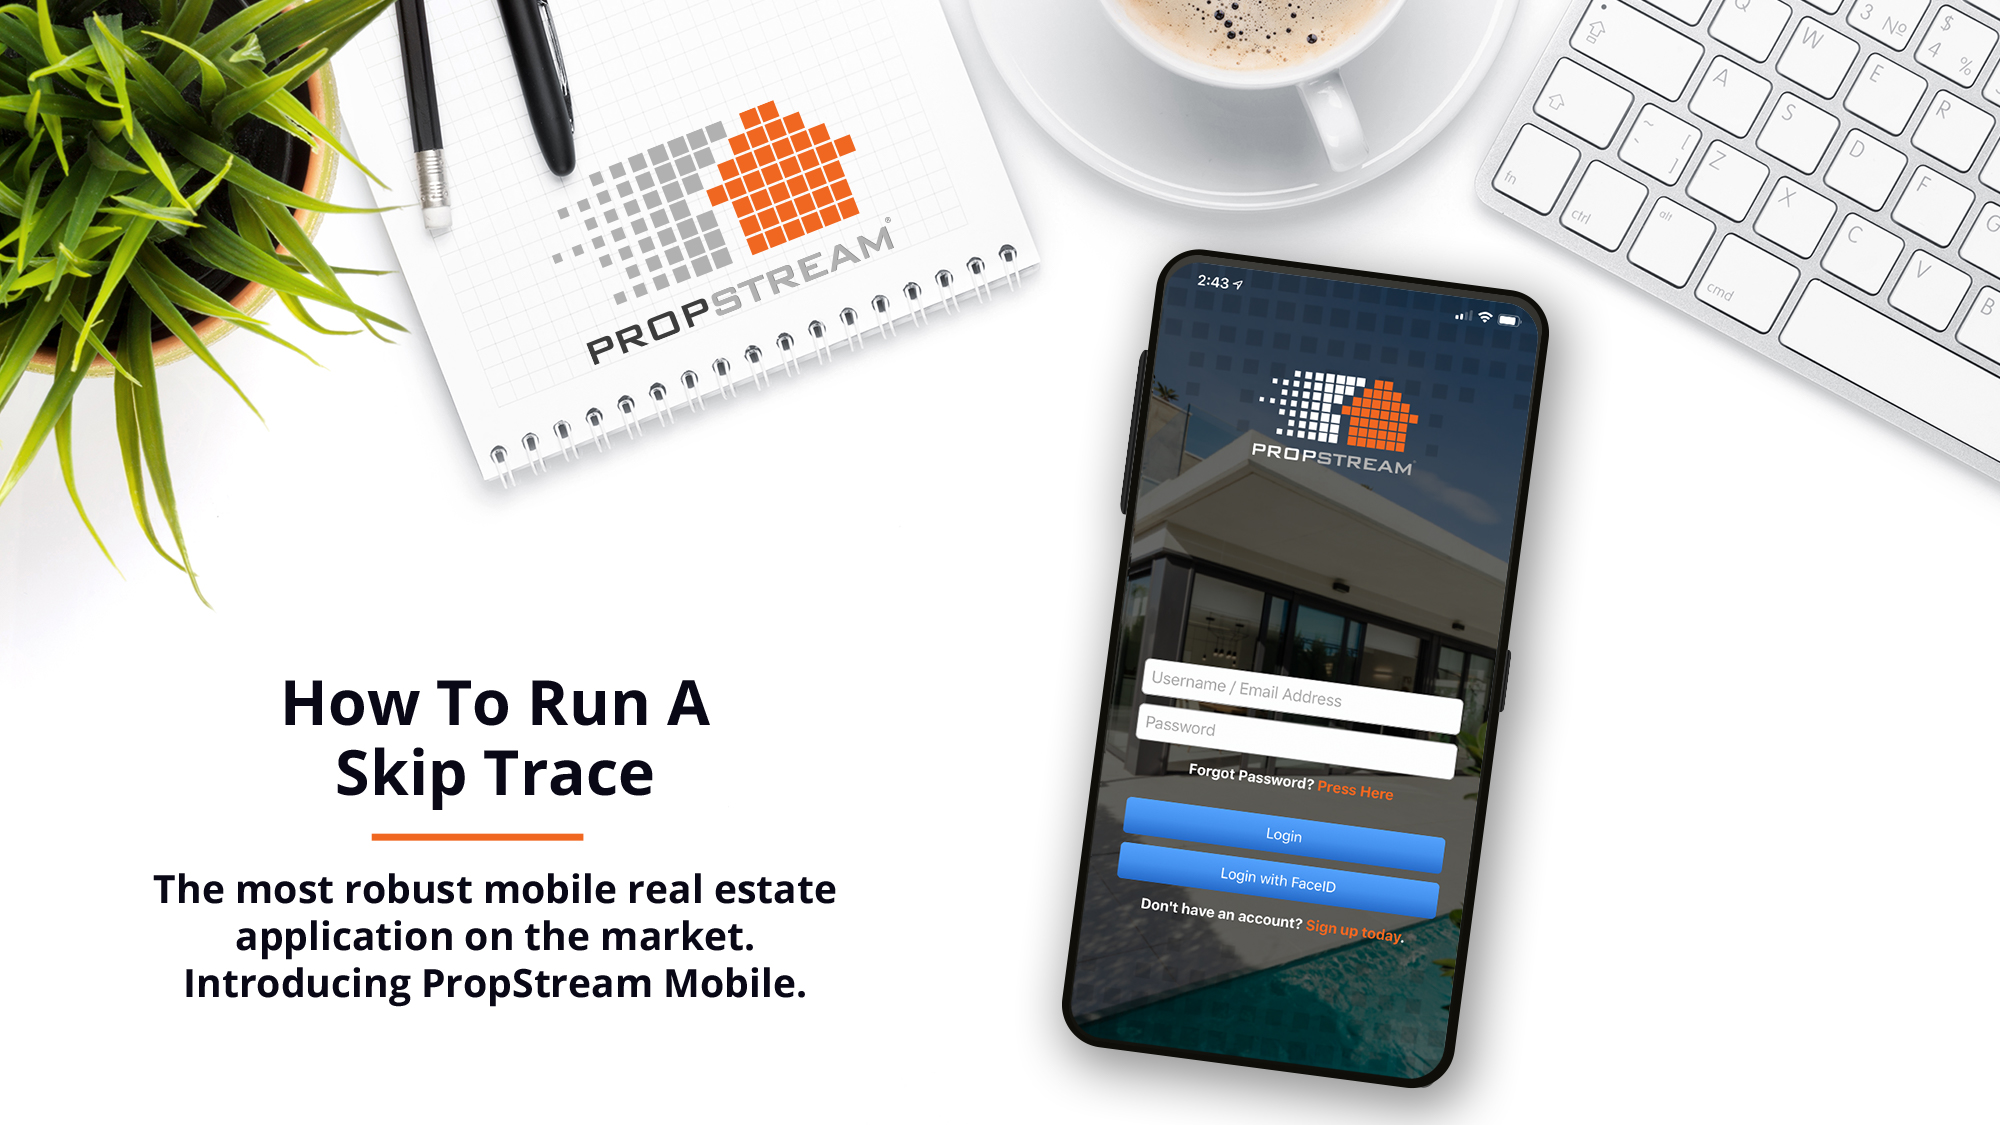 How to run a skip trace in PropStream Mobile